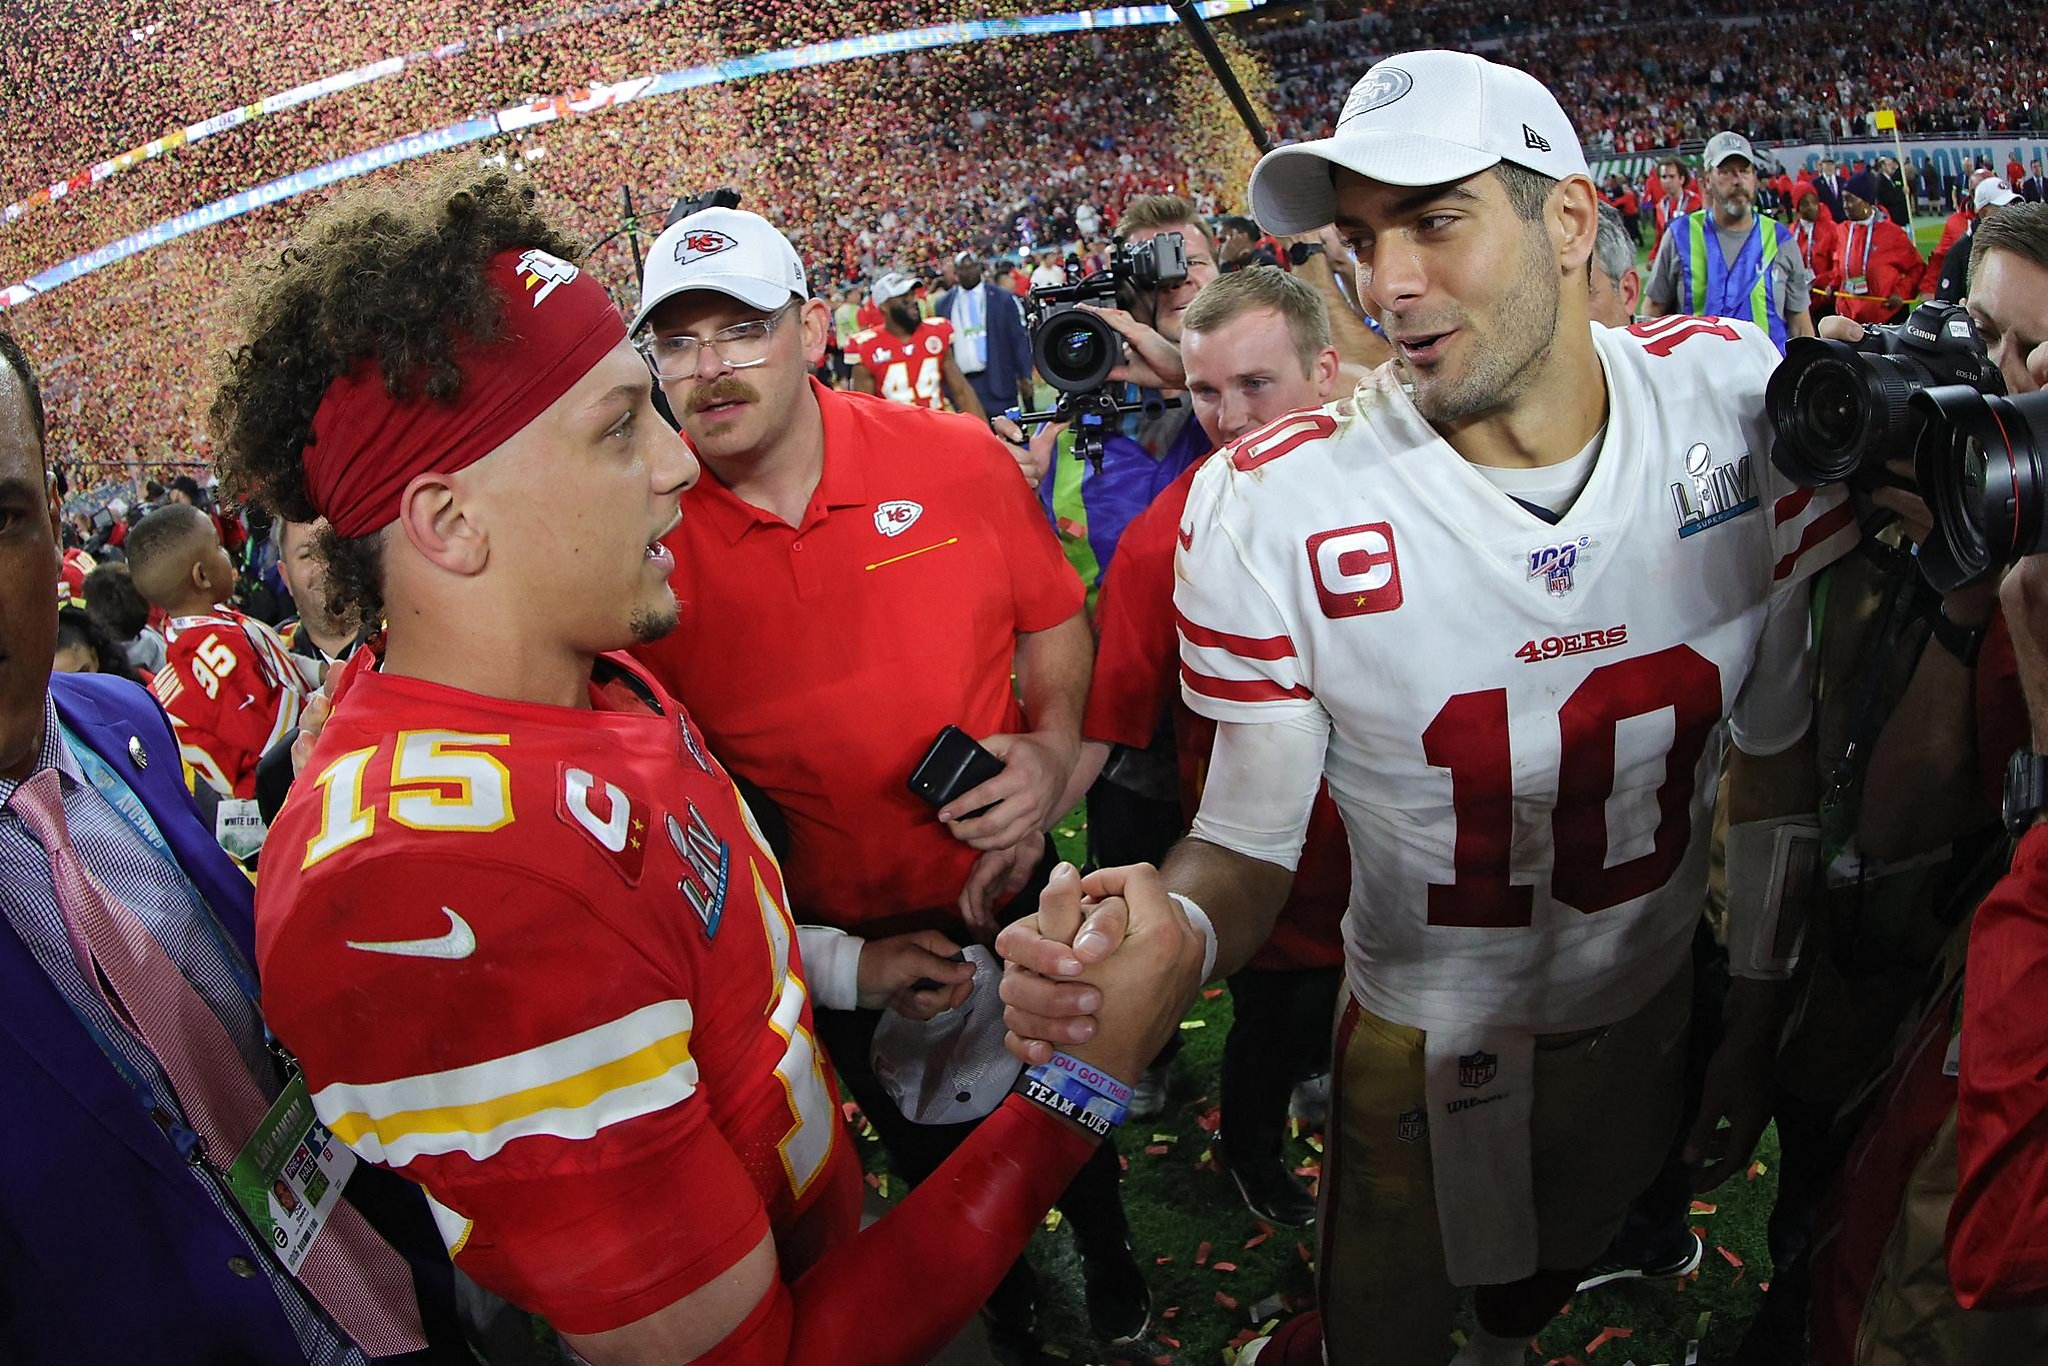 Super Bowl review: A coin flip, fans, friendly 49ers, and ... iguanas?